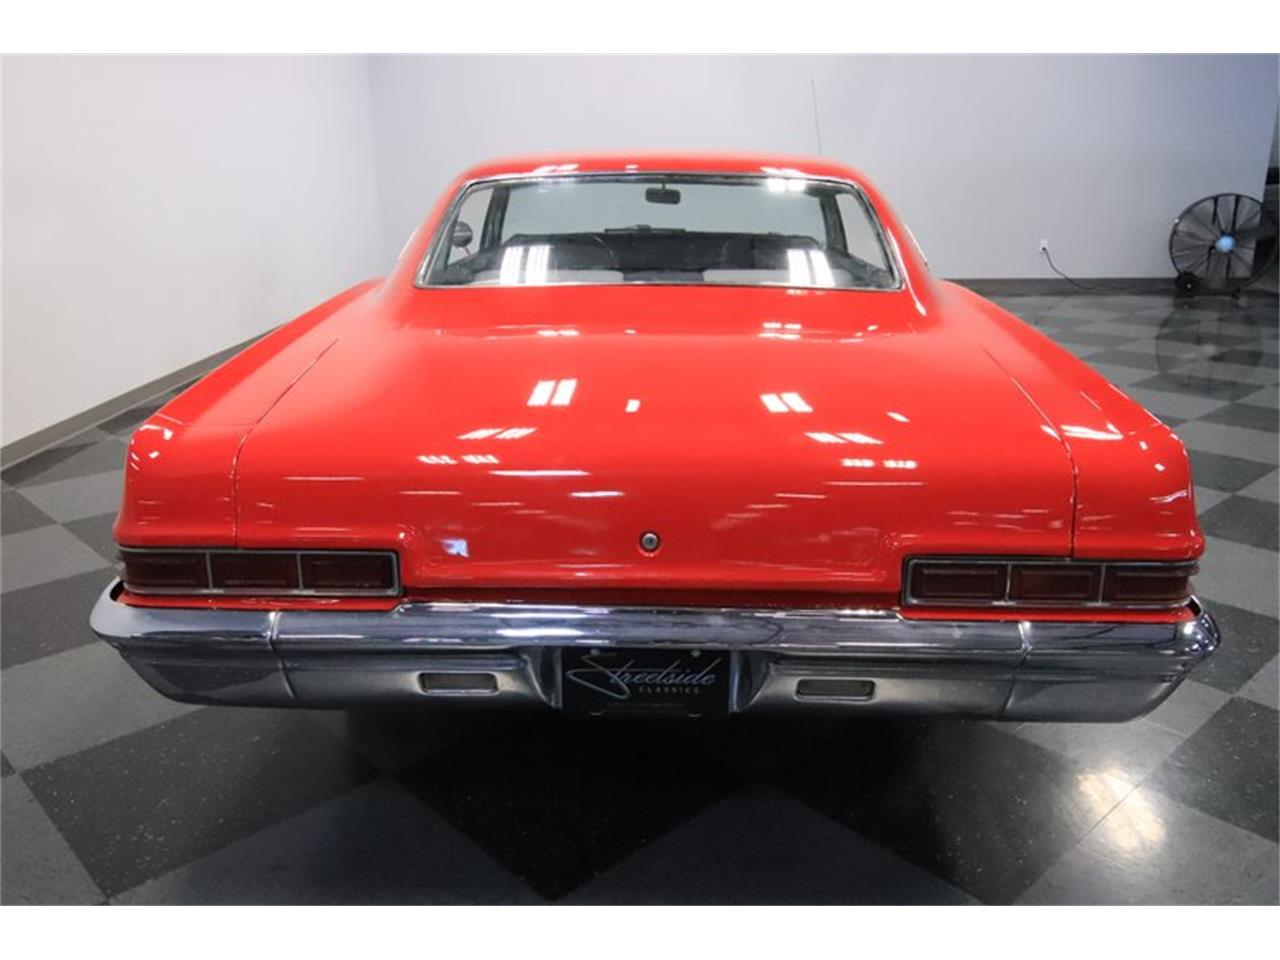 Large Picture of '66 Chevrolet Impala located in Mesa Arizona Offered by Streetside Classics - Phoenix - Q2EL